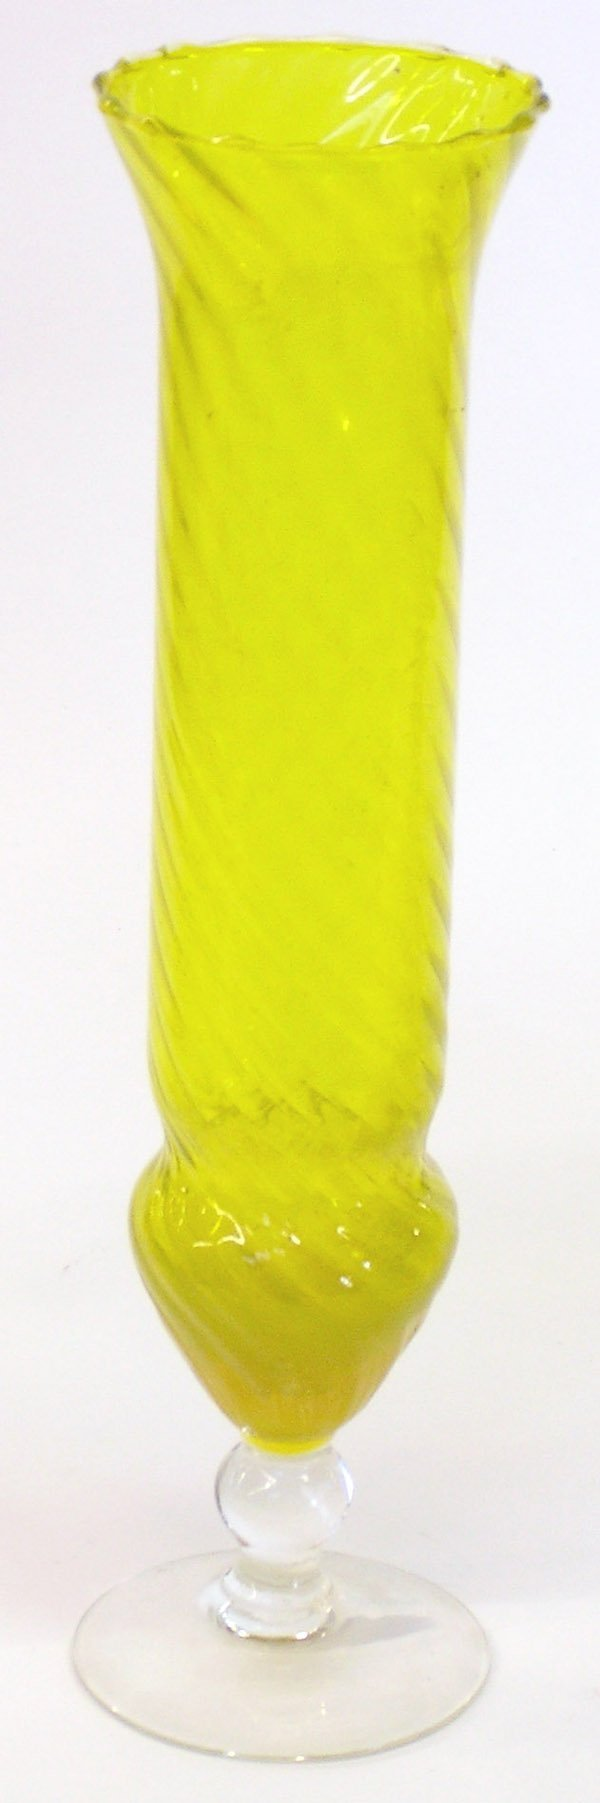 10: Vaseline yellow glass vase